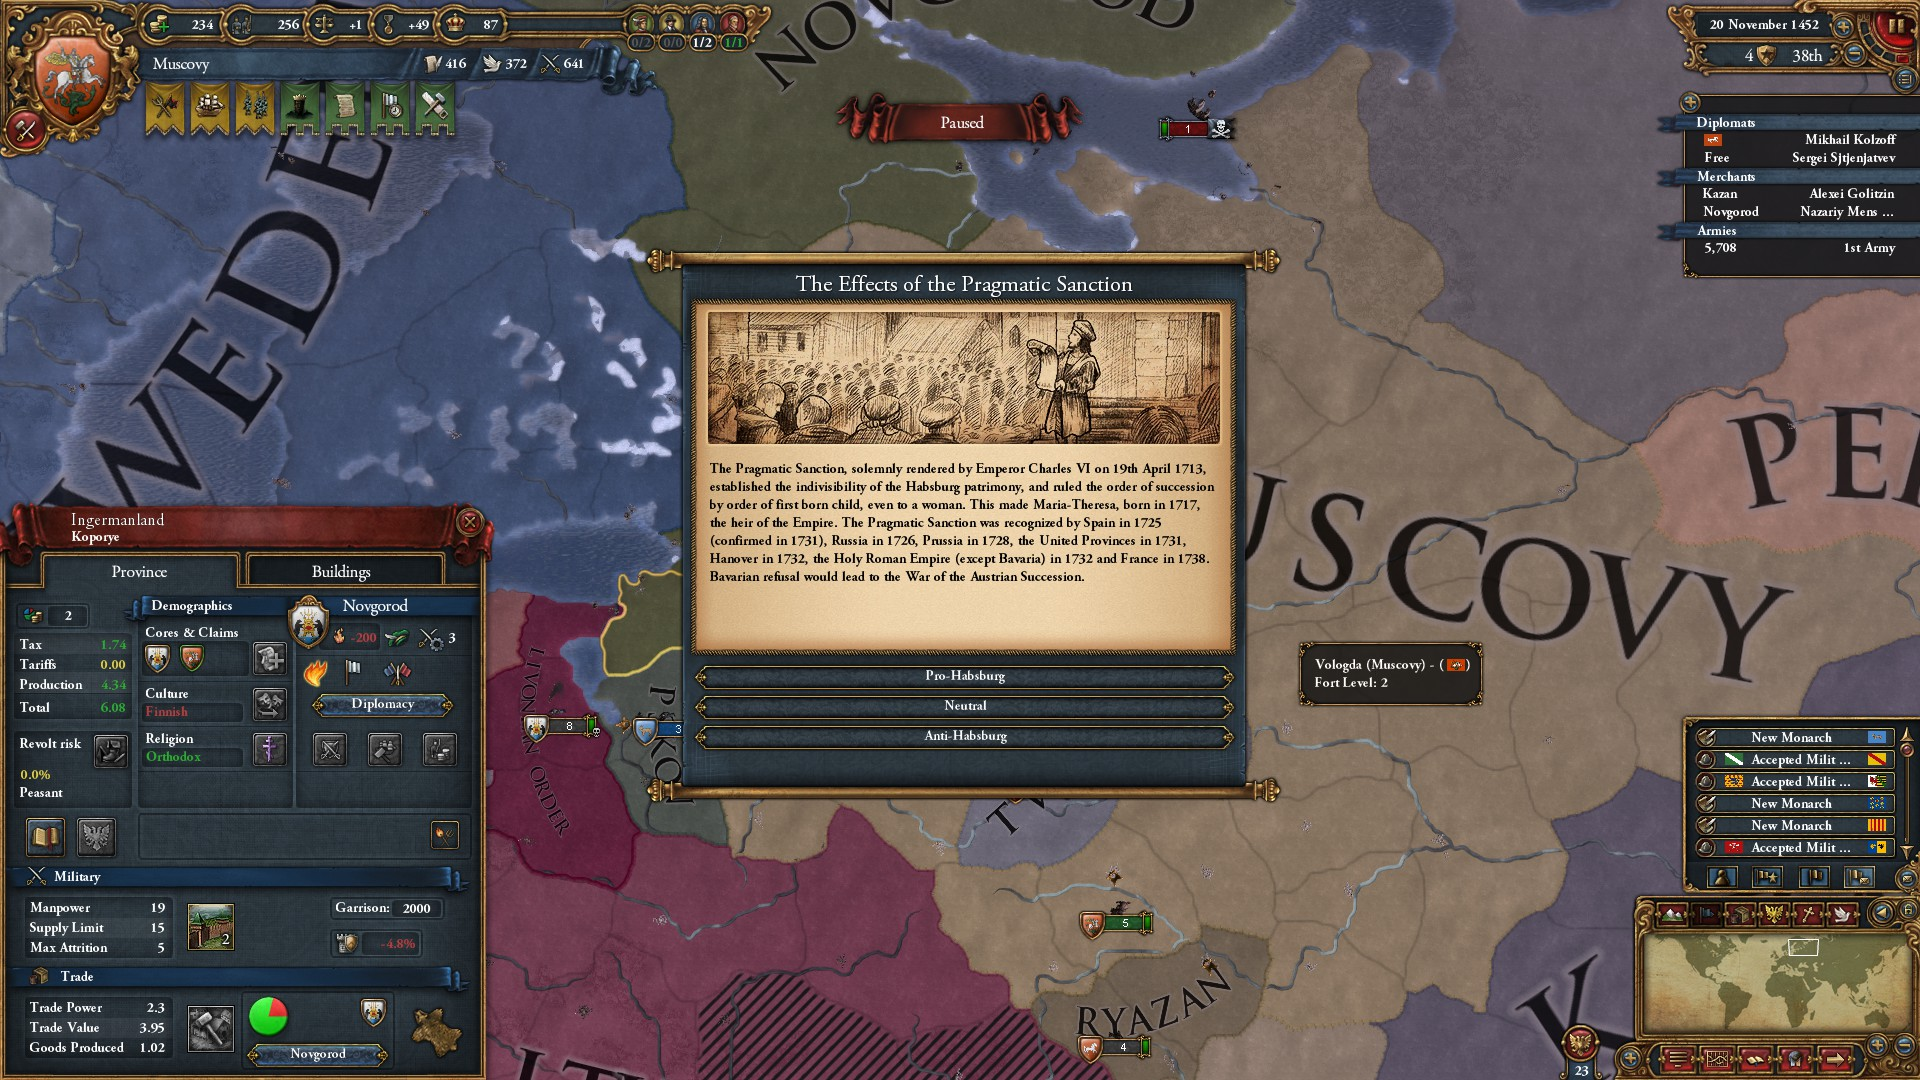 europa universalis 4 how to see province id